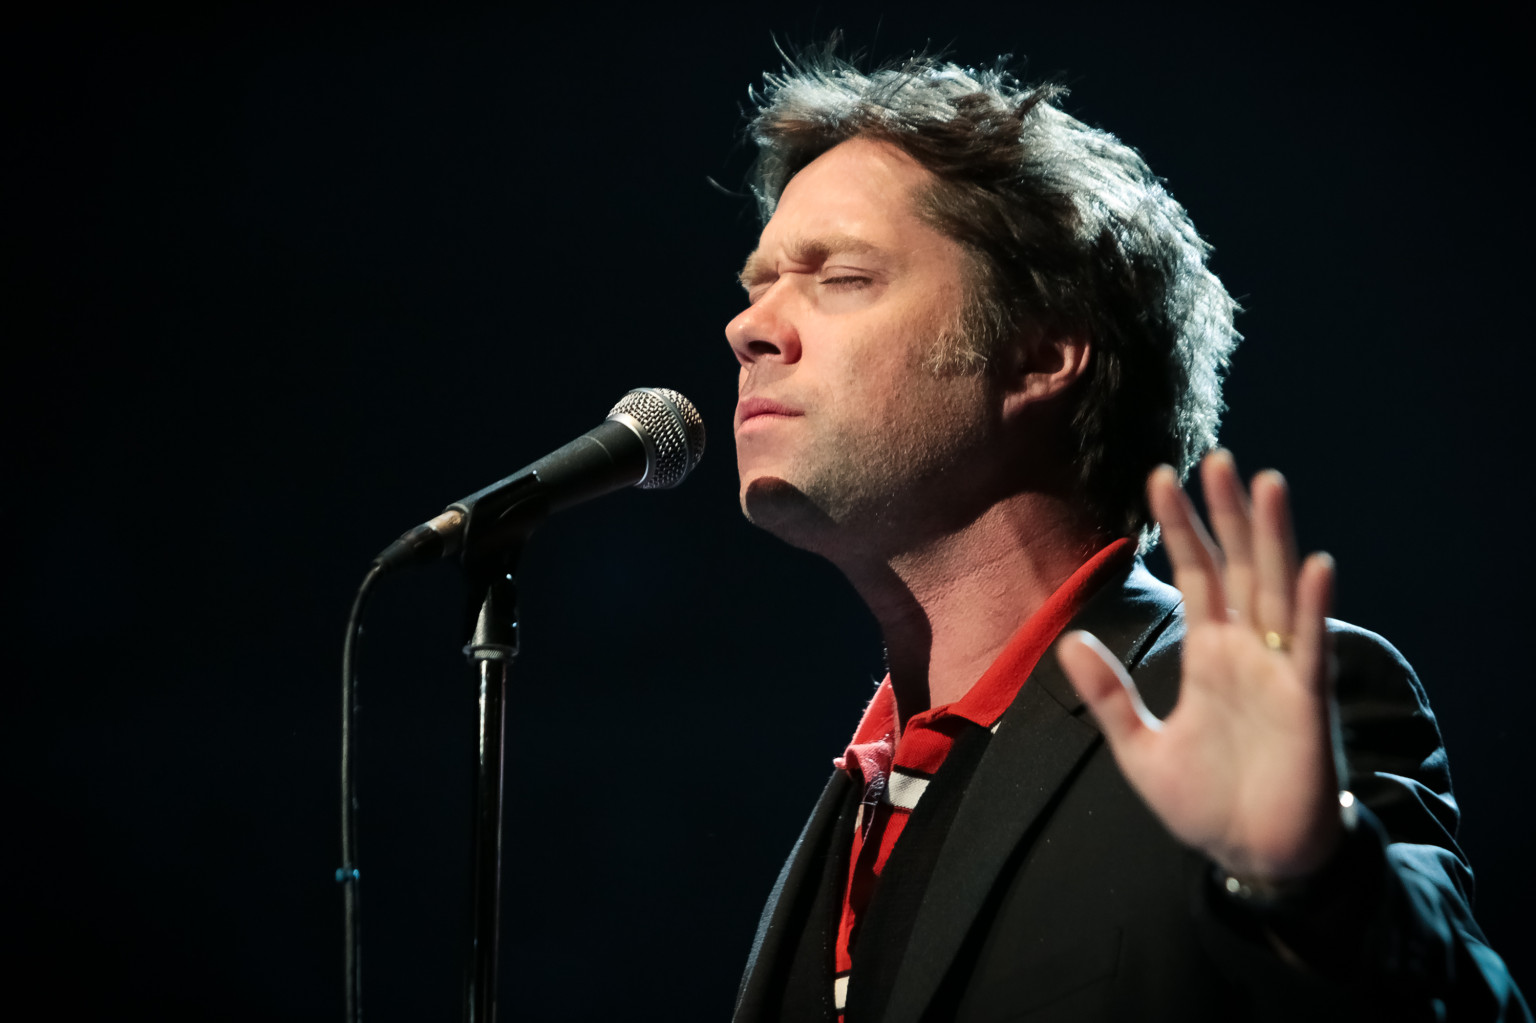 Rufus Wainwright Discusses Being A Gay Artist On HuffPost Live | HuffPost